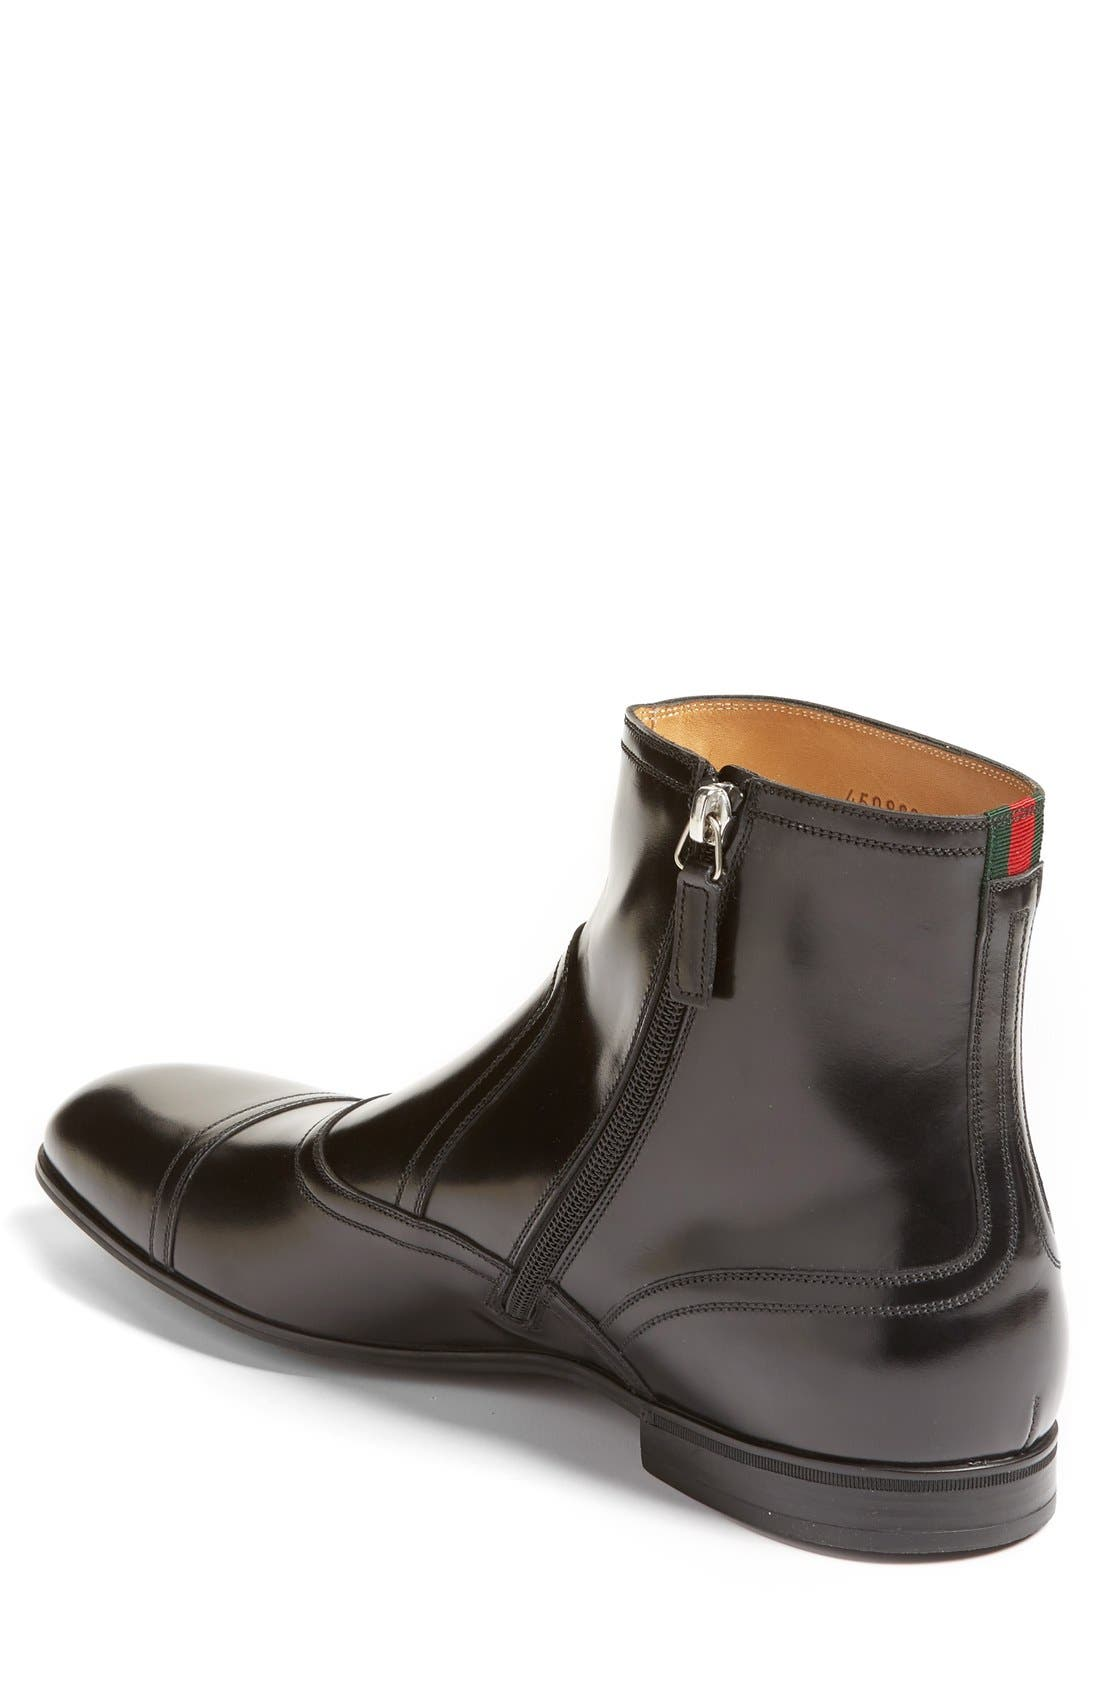 Ravello Zip Boot,                             Alternate thumbnail 2, color,                             Nero Leather